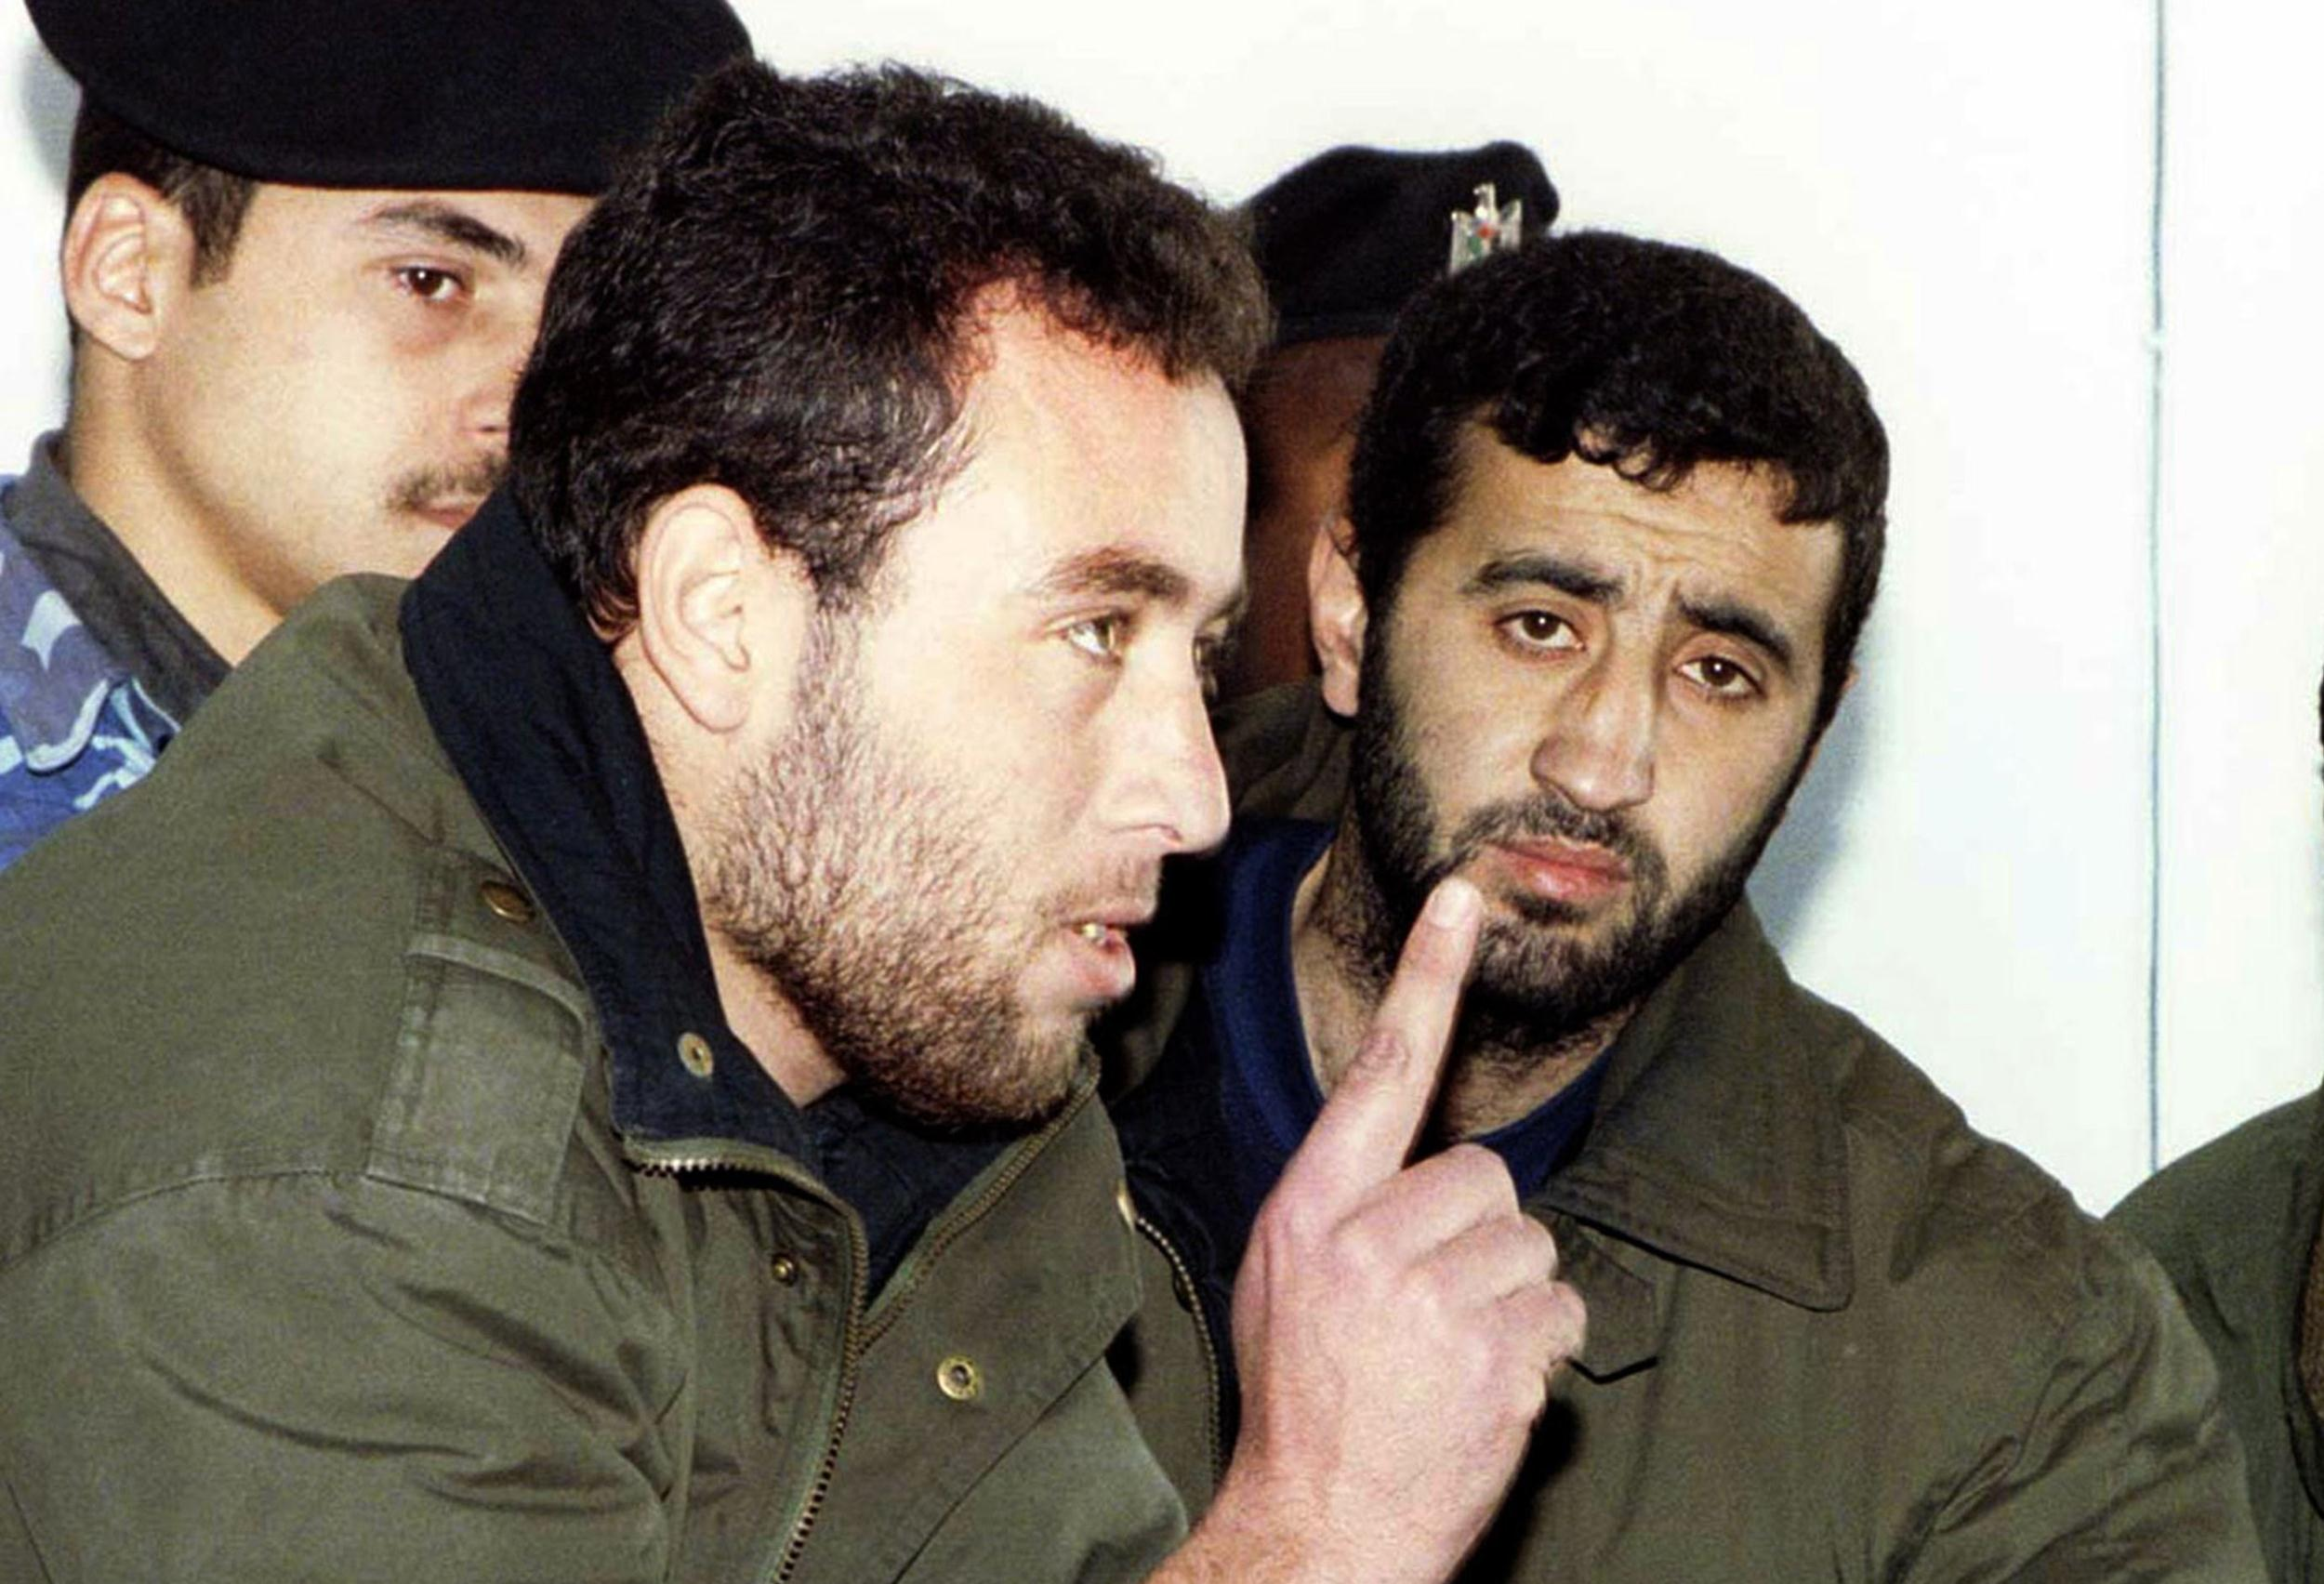 Image: Raed al-Attar, left, and Mohammed Abu Shammala from Hamas